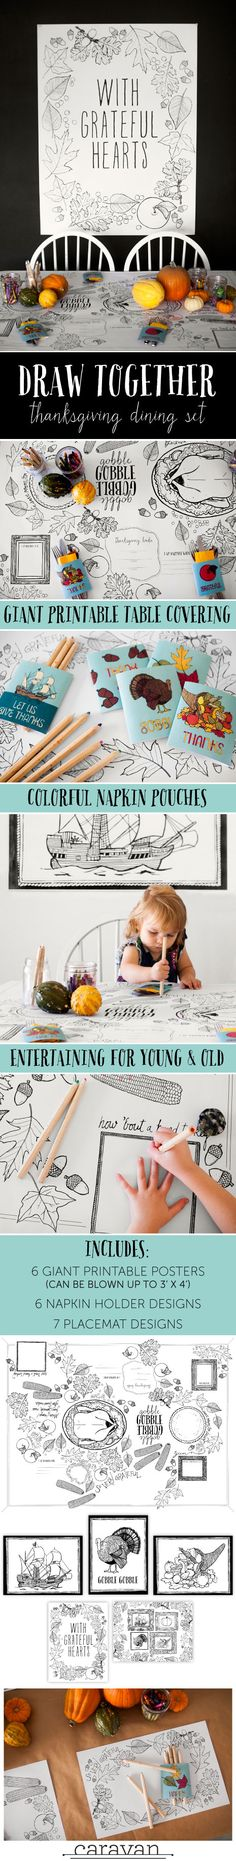 Easy printable Thanksgiving table decor. Works great for kids' table AND for grown-ups too!